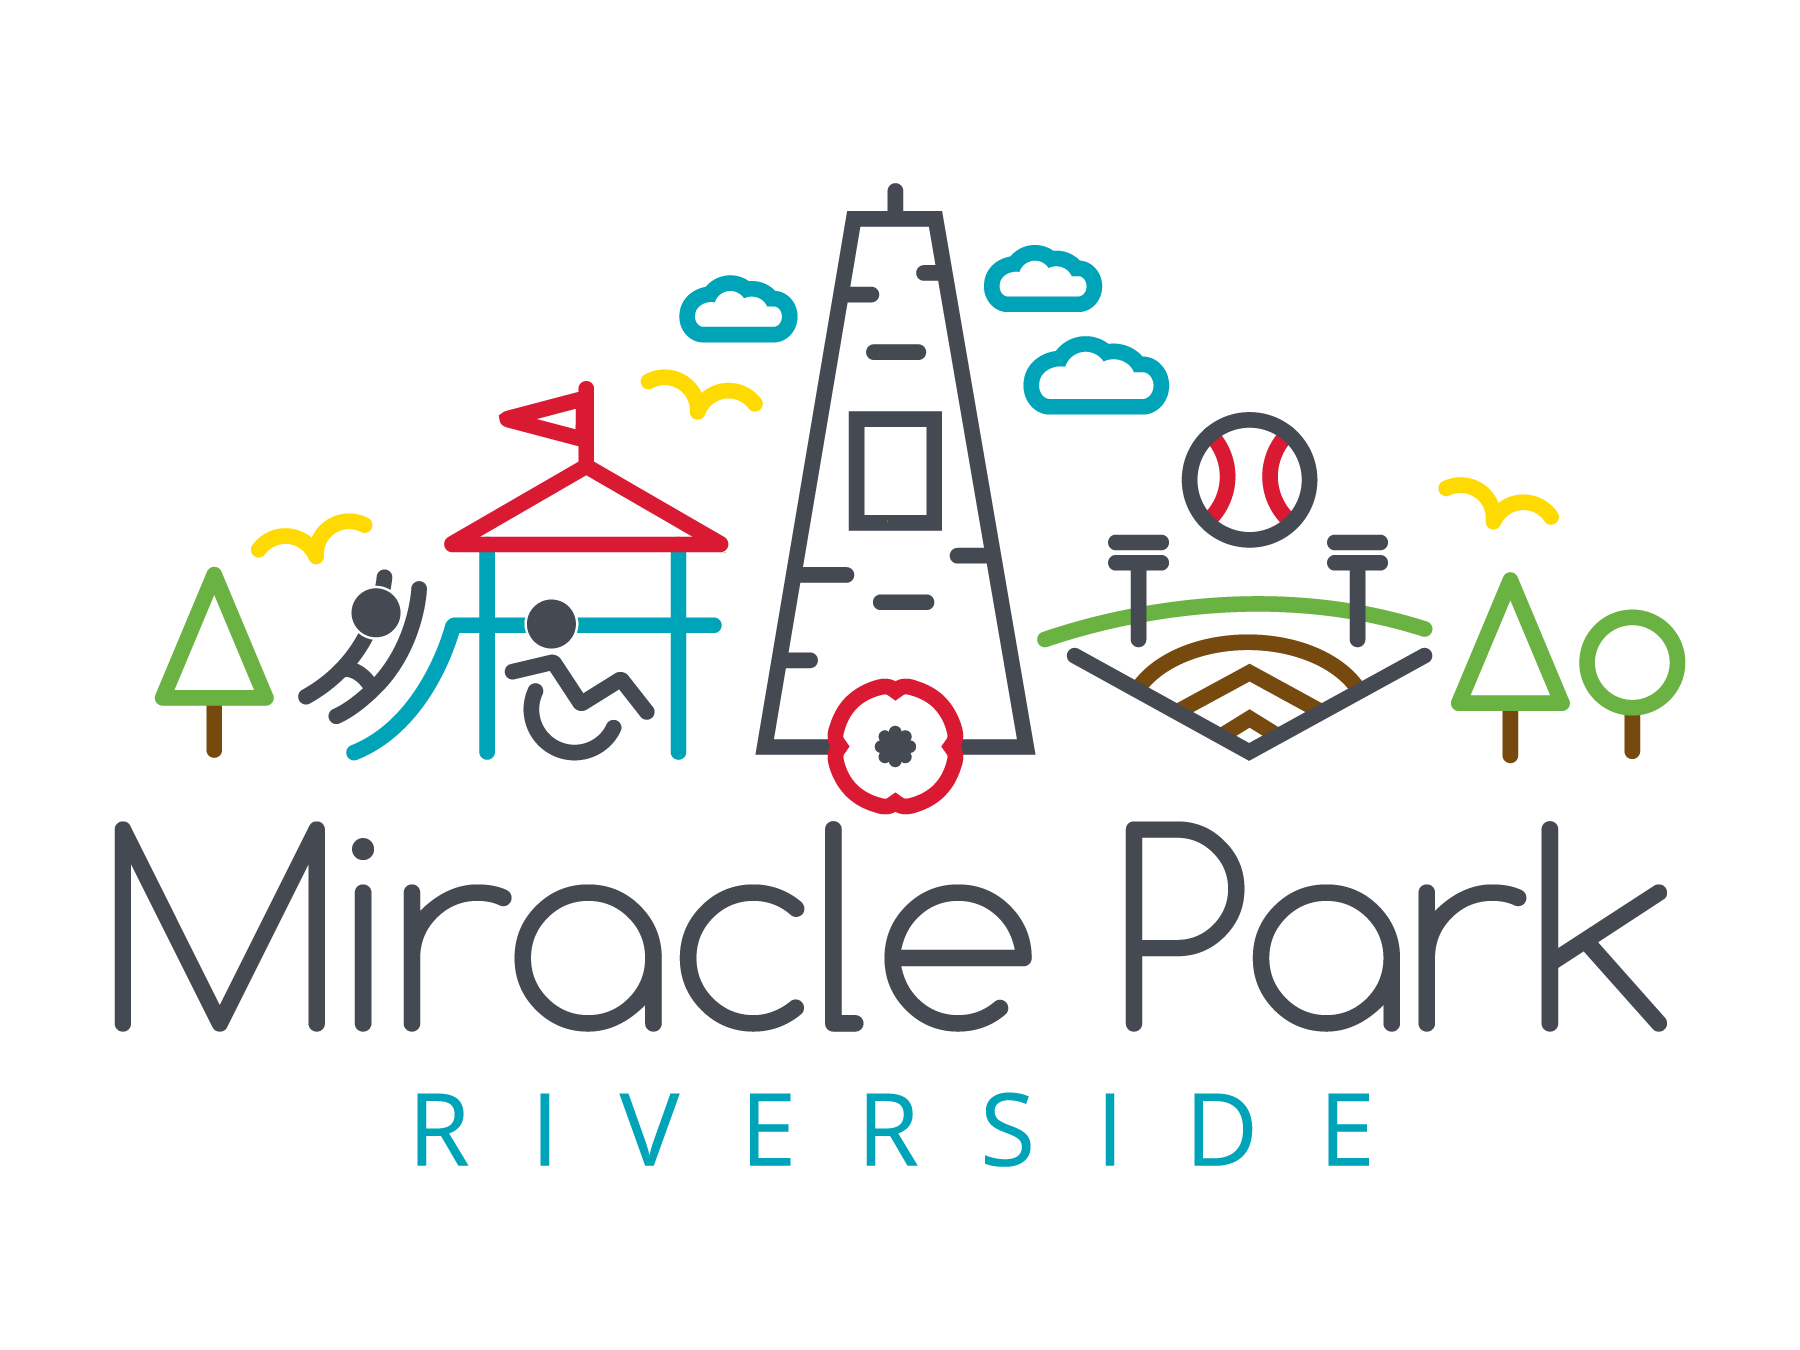 First Version of Riverside Miracle Park Logo